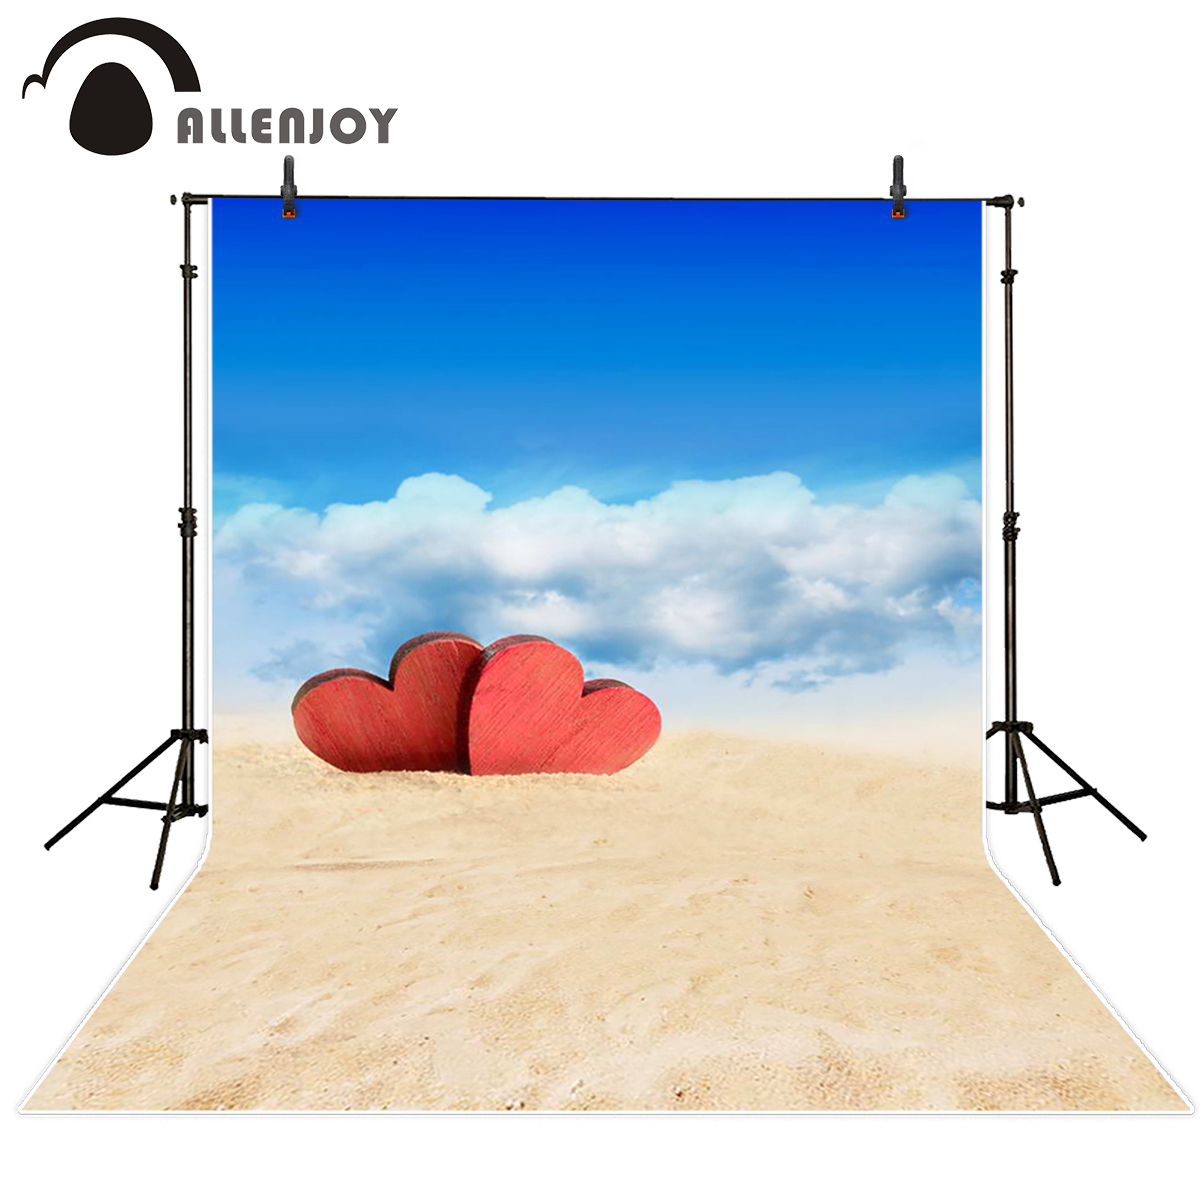 Allenjoy photography backdrops love desert romantic blue sky background photography backdrop for photo studio 10*20ft allenjoy photography backdrops love pink romantic background photography wedding backdrop for valentine s day